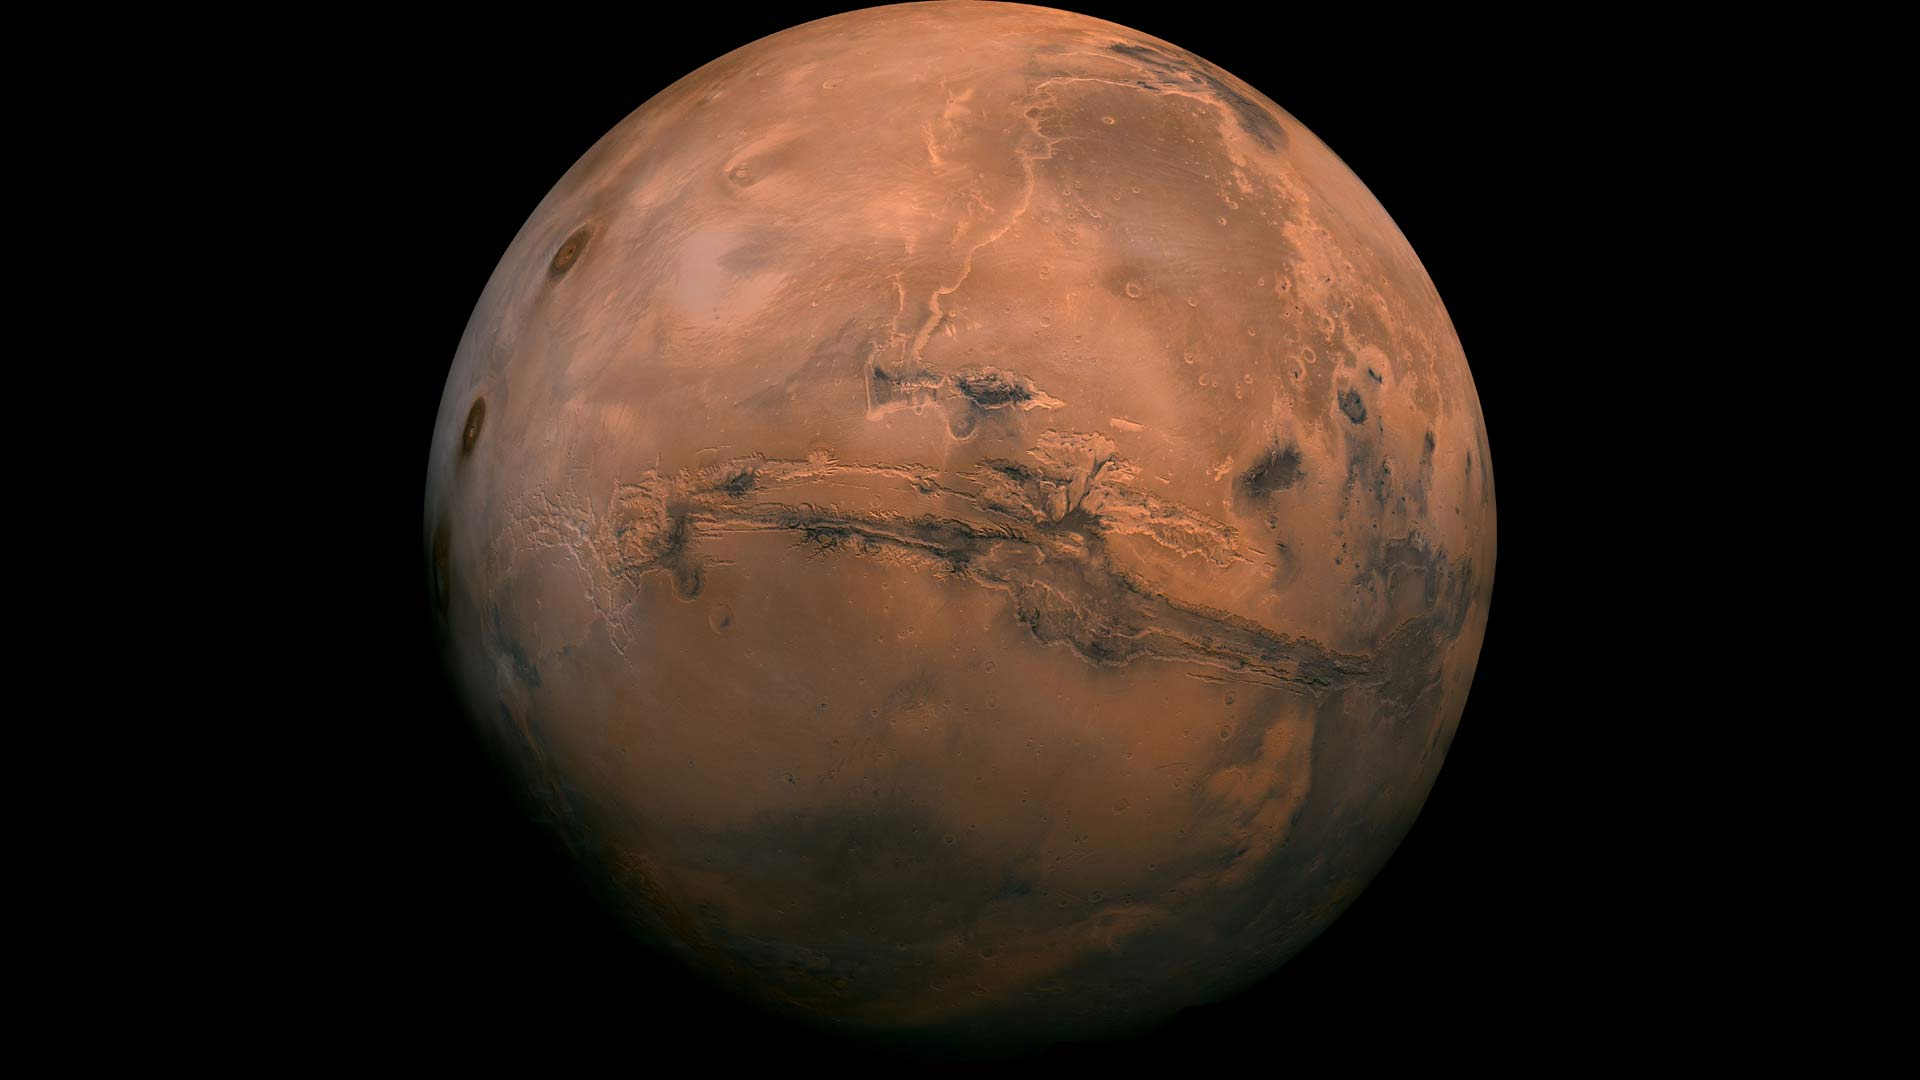 Mosaic of the Valles Marineris hemisphere of Mars, by the Viking Orbiter. The Valles Marineris canyon system is visible.